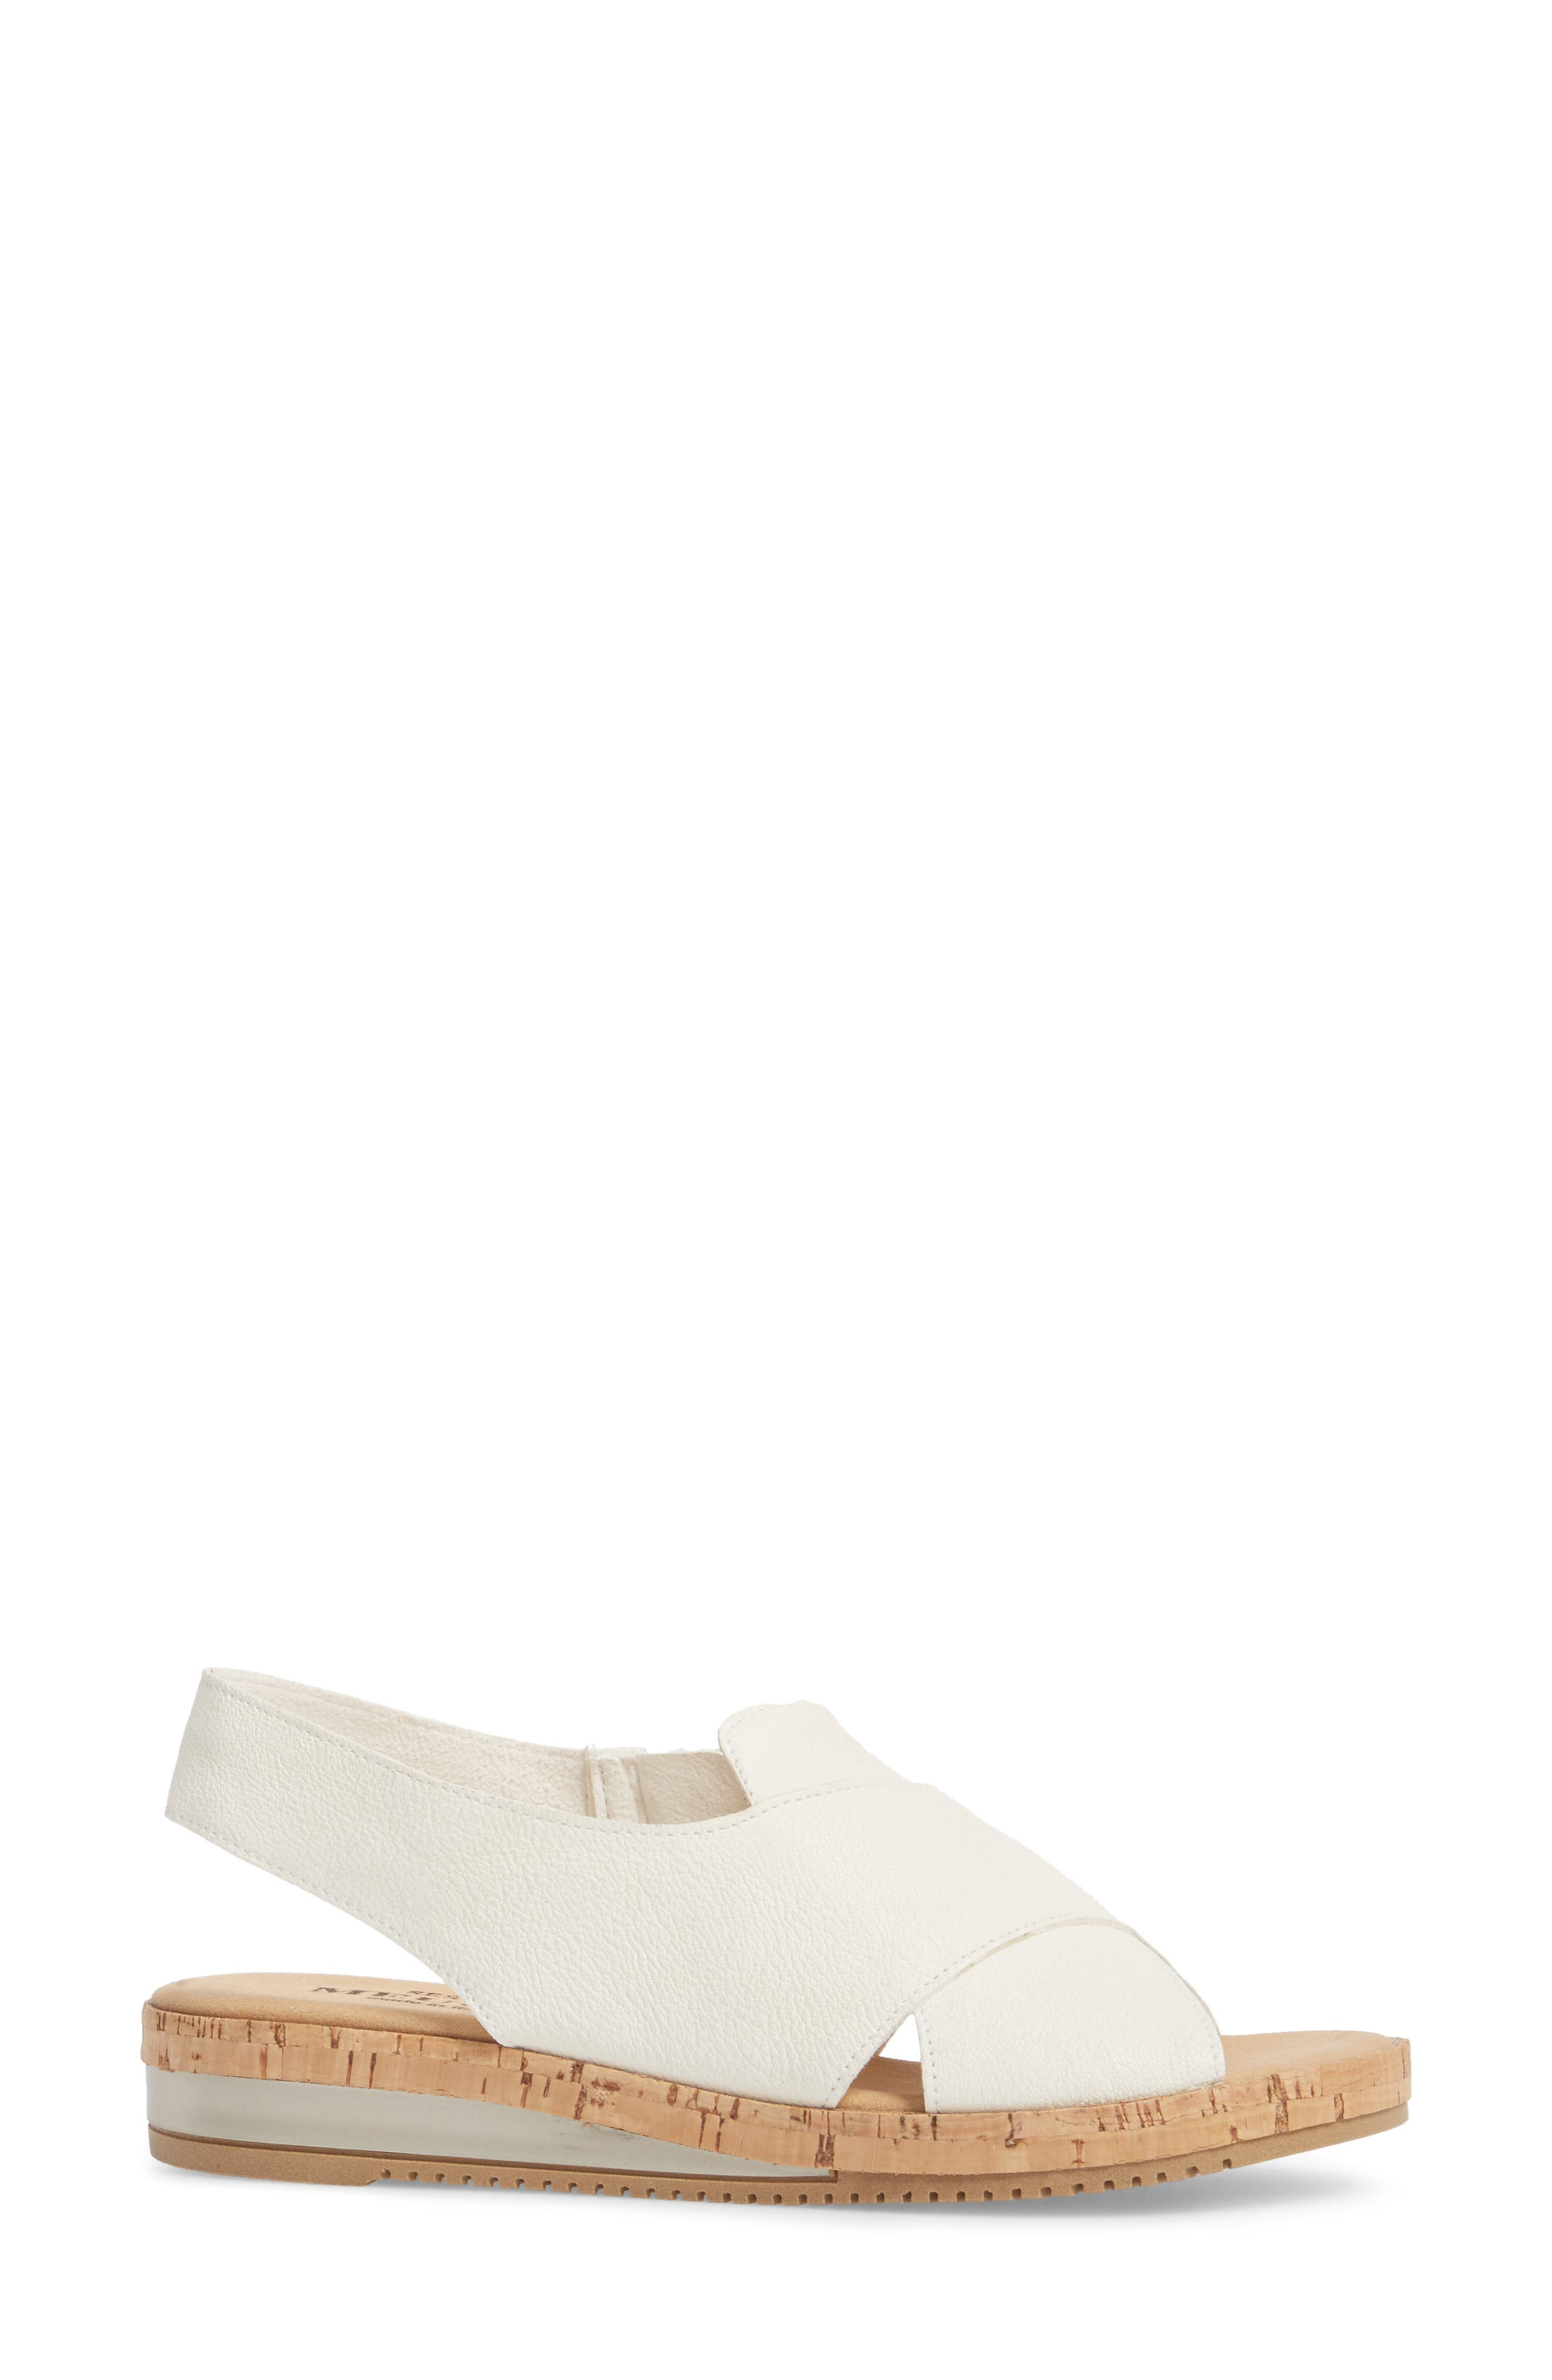 Sylke Sandal,                             Alternate thumbnail 3, color,                             WHITE LEATHER